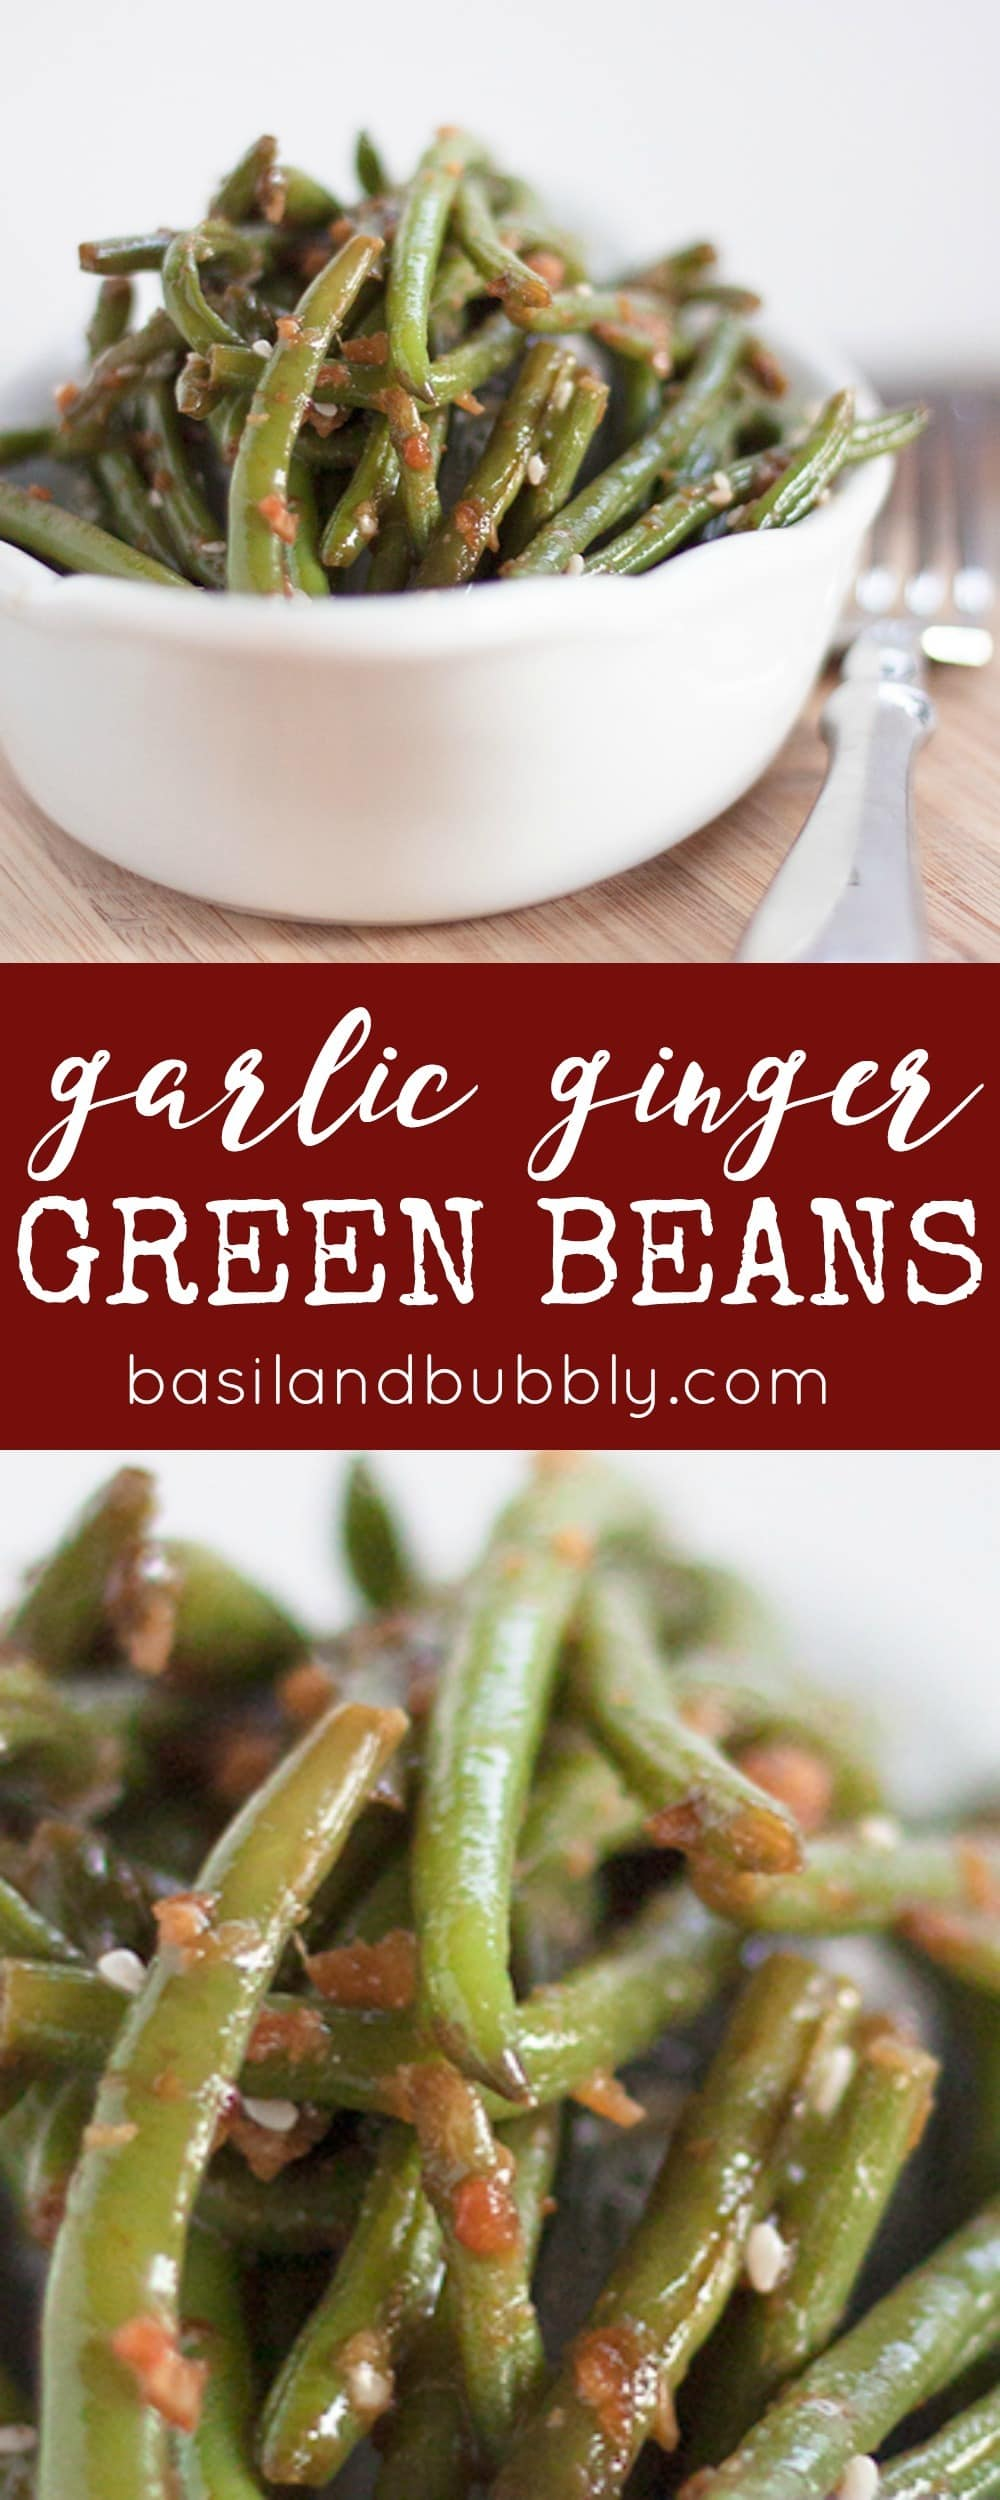 Garlic Ginger Green Beans for a Chinese Vegetable Side Dish just like PF Chang's restaurant! My favorite copycat recipe